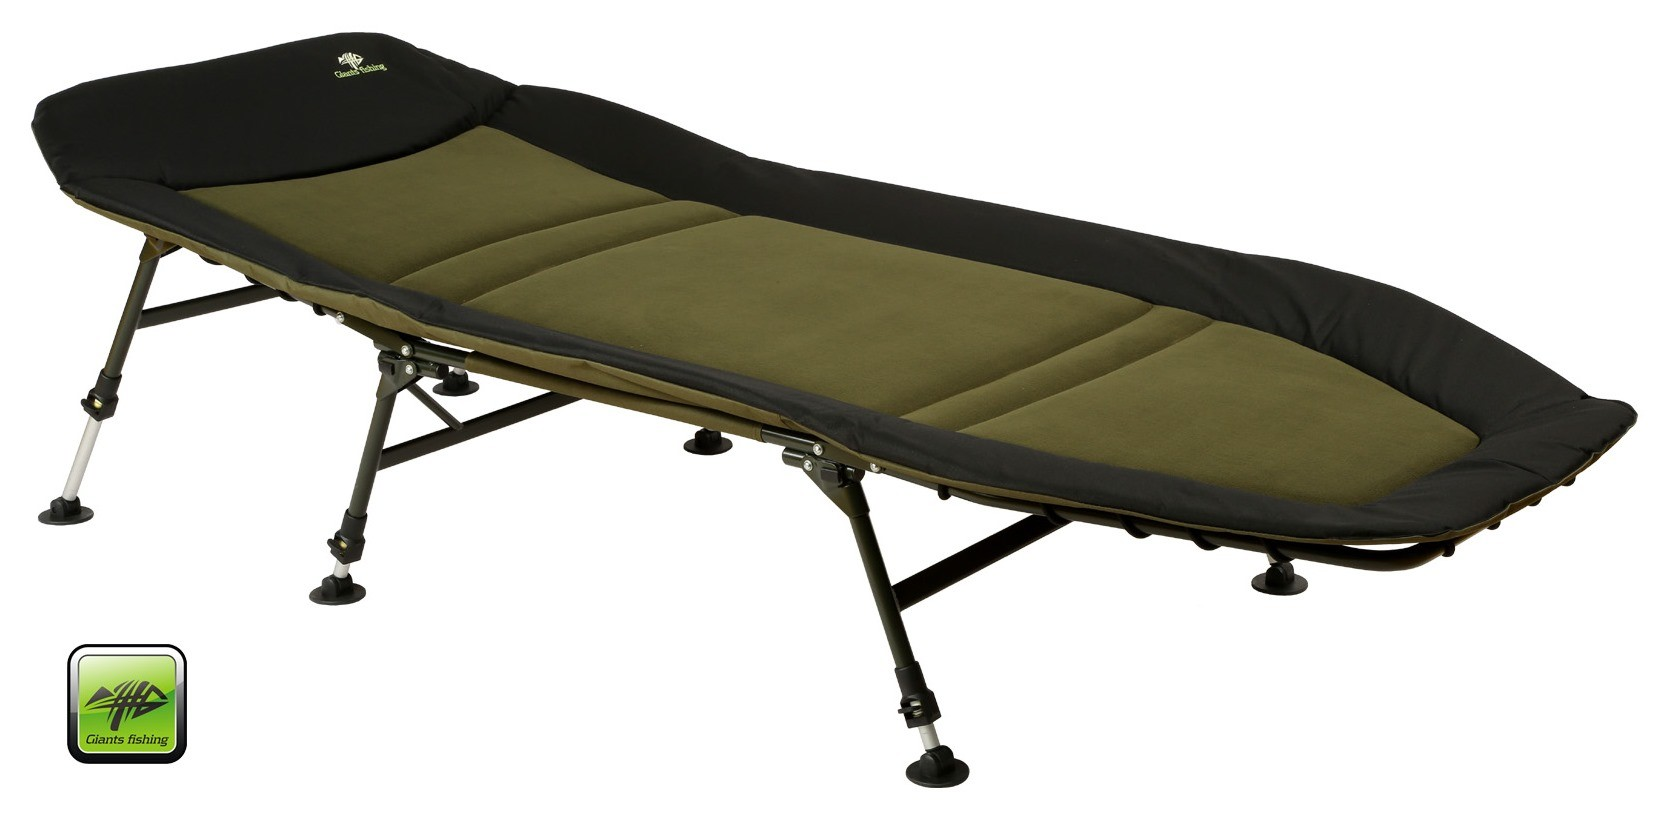 Giants Fishing Flat Fleece 6Leg Bedchair lehátko